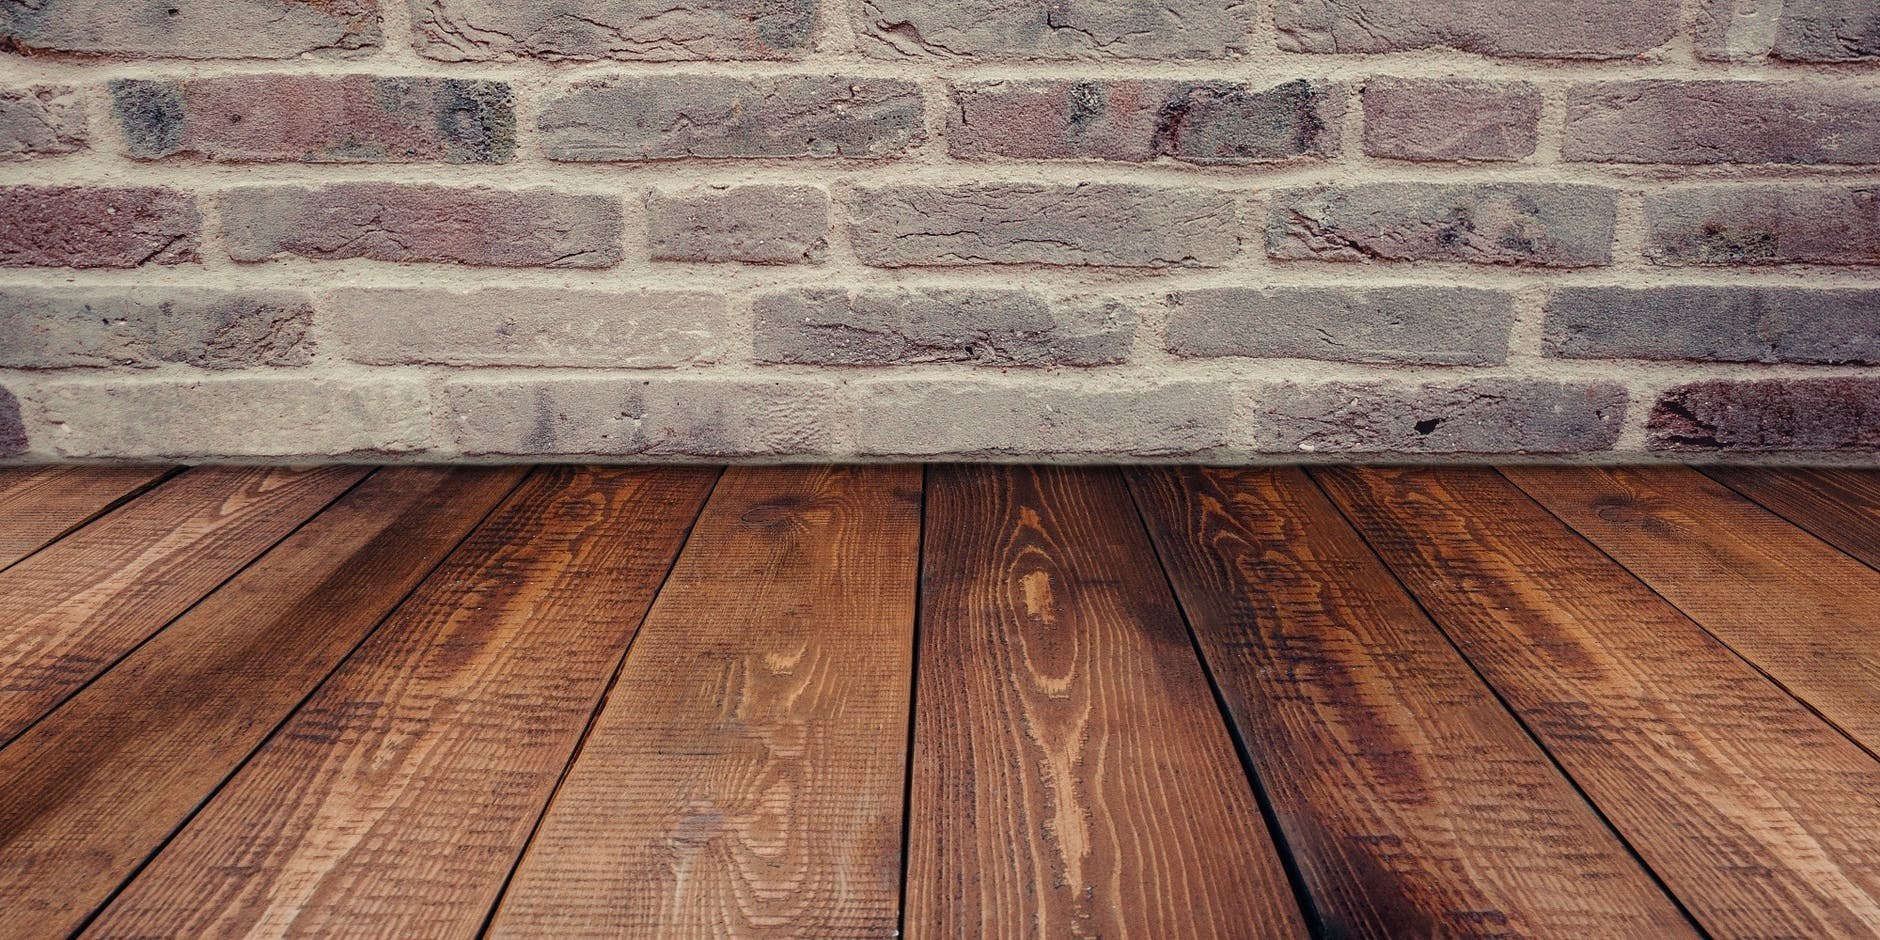 picture of stained wooden floors and a brick wall